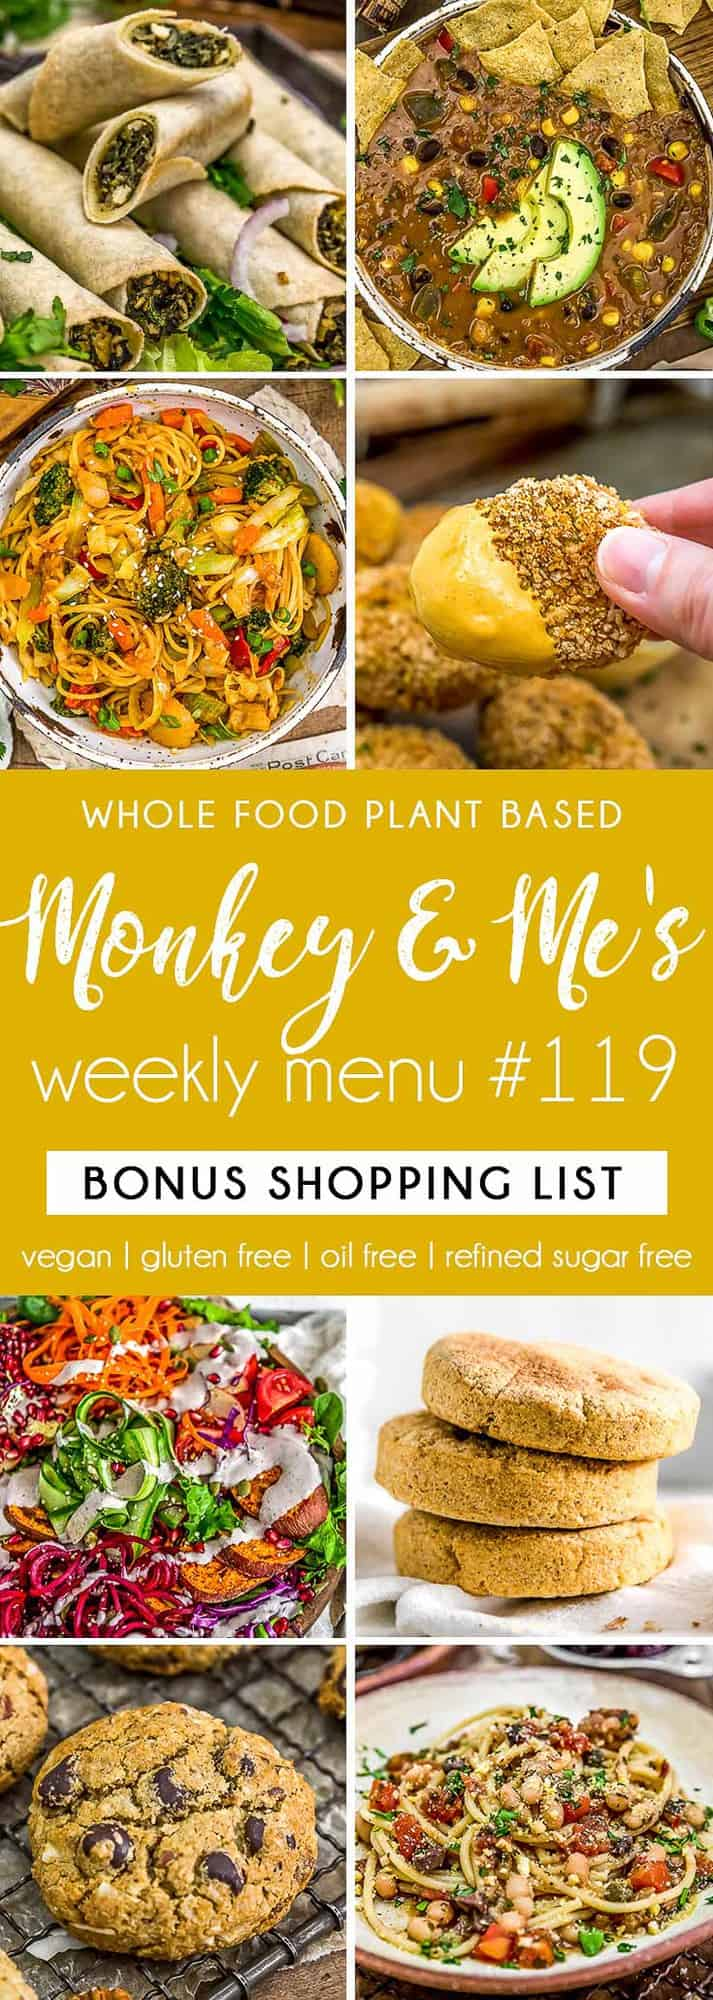 Monkey and Me's Menu 119 featuring 8 recipes